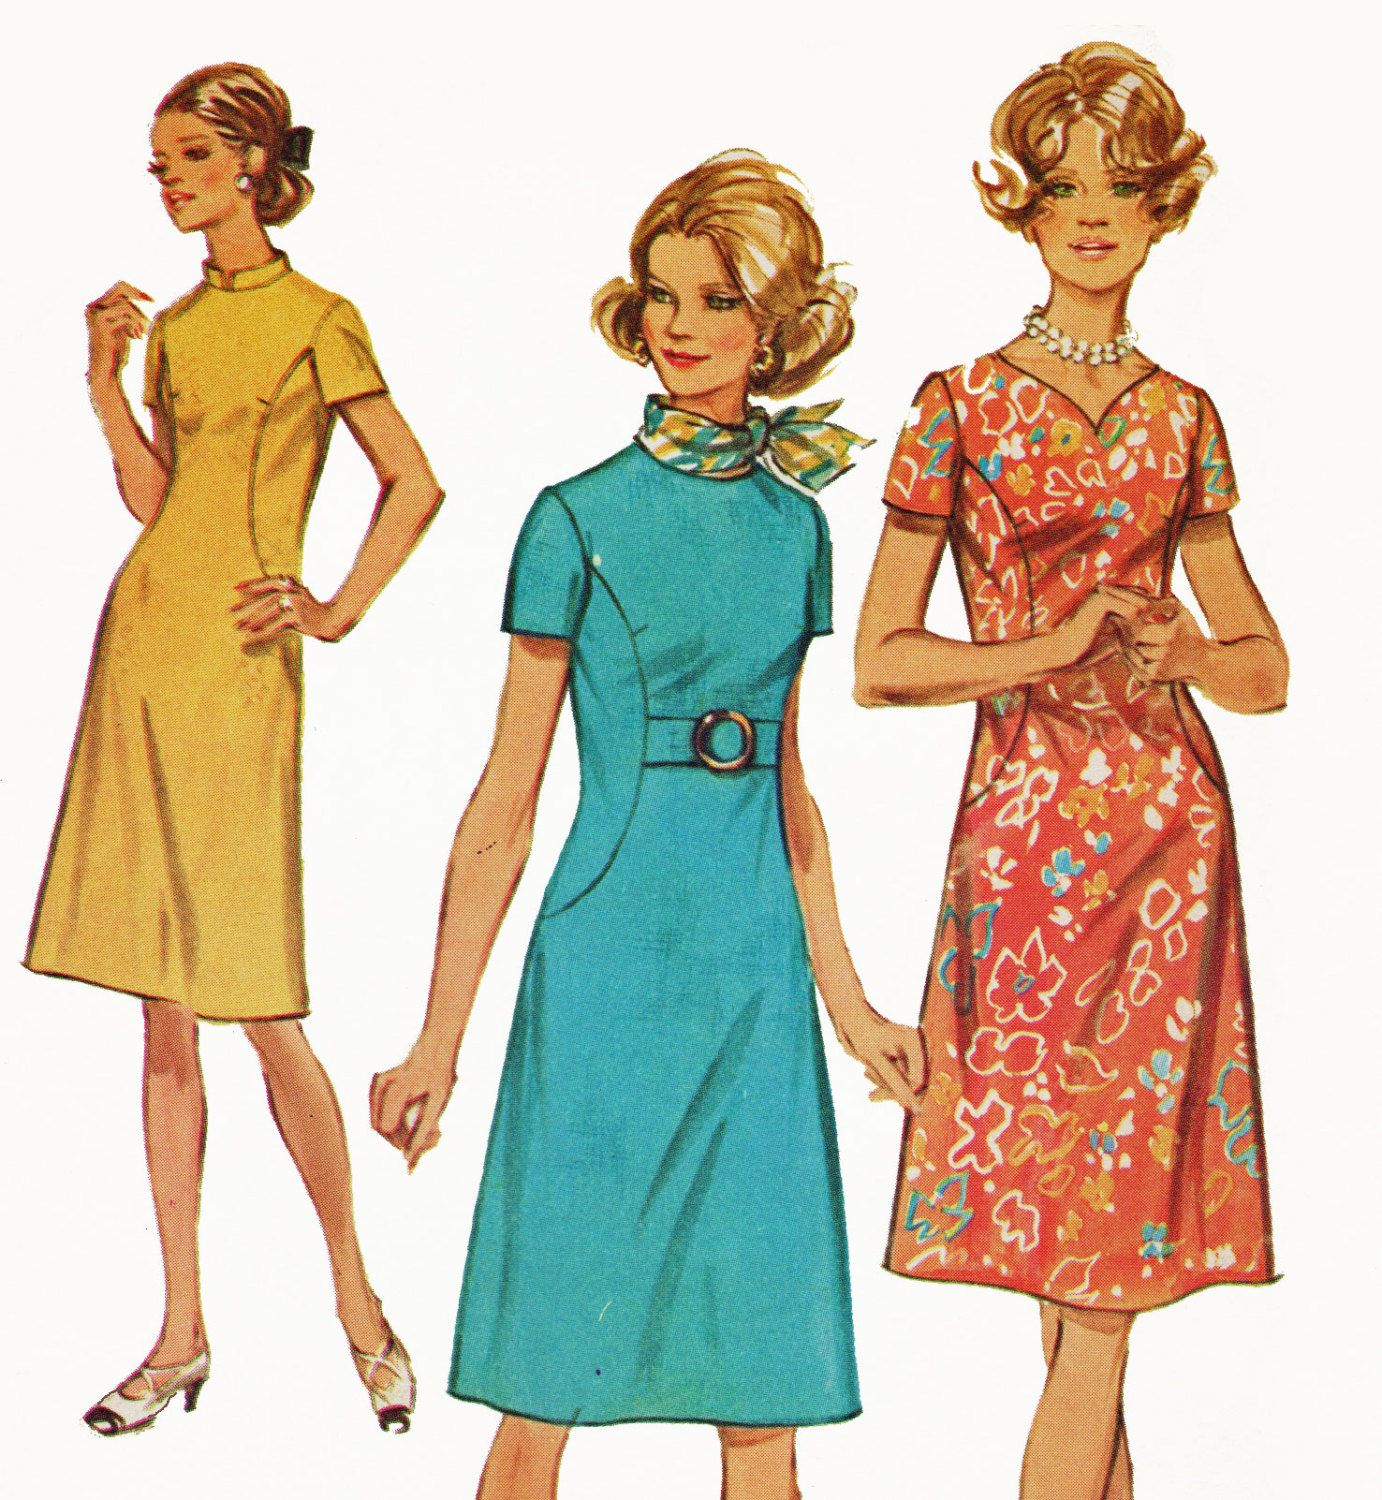 Retro 1970s A Line Dress Pattern With Neck Variations And Etsy Simplicity Patterns Dresses Short Sleeve Dress Pattern Shift Dress Pattern [ 1500 x 1382 Pixel ]